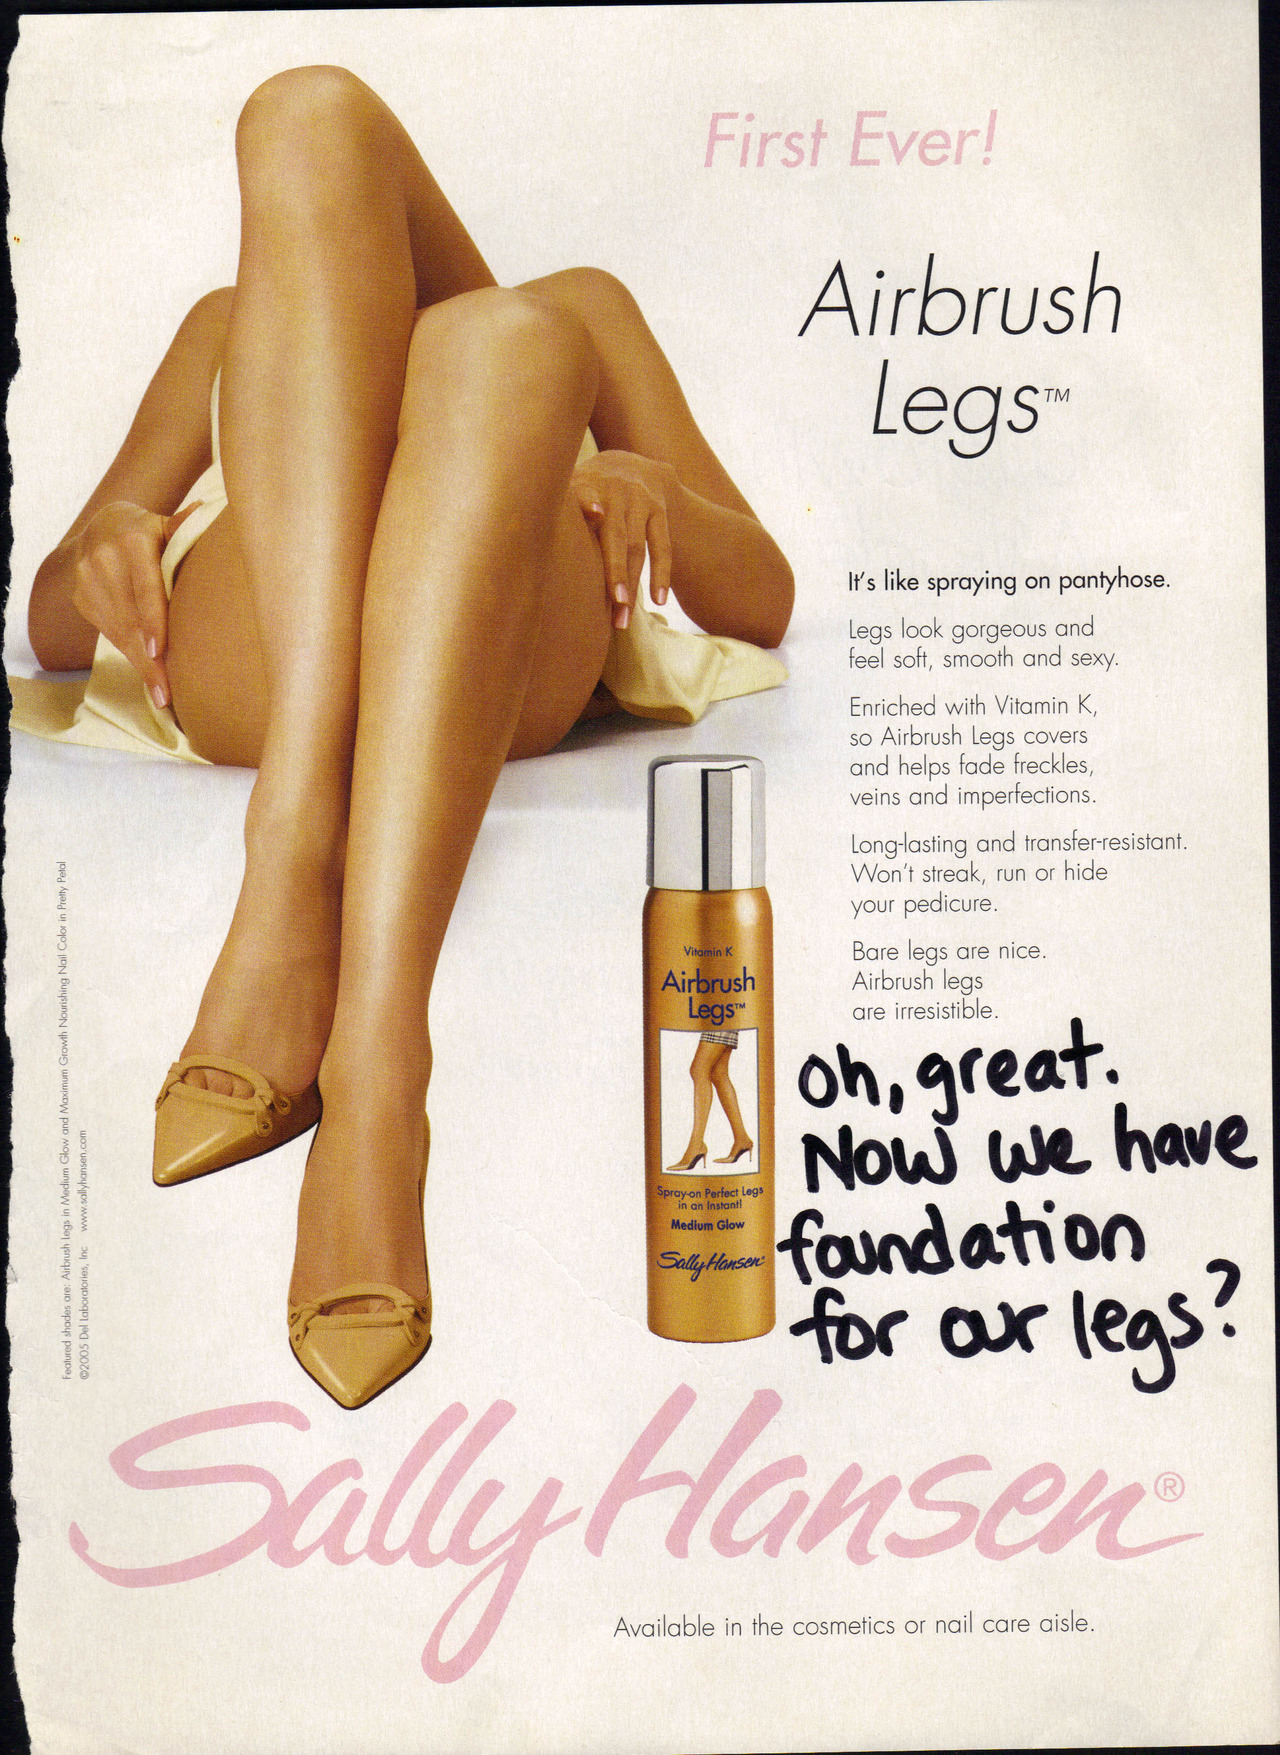 "According to the copy, ""Airbrush Legs covers and helps fade freckles, veins and imperfections."" My scars and veins are not imperfections, they are part of me! I will not cover them, and I will not worry about what other people think of them. Although I advocate for positive body image and self confidence, I am not immune to feeling insecure about my body. I have had varicose veins since my early 20's and am self conscious about them. I work really hard to accept them, and I refuse to stop wearing shorts or skirts because of them. I will not cover up my legs with spray-on pantyhose!"